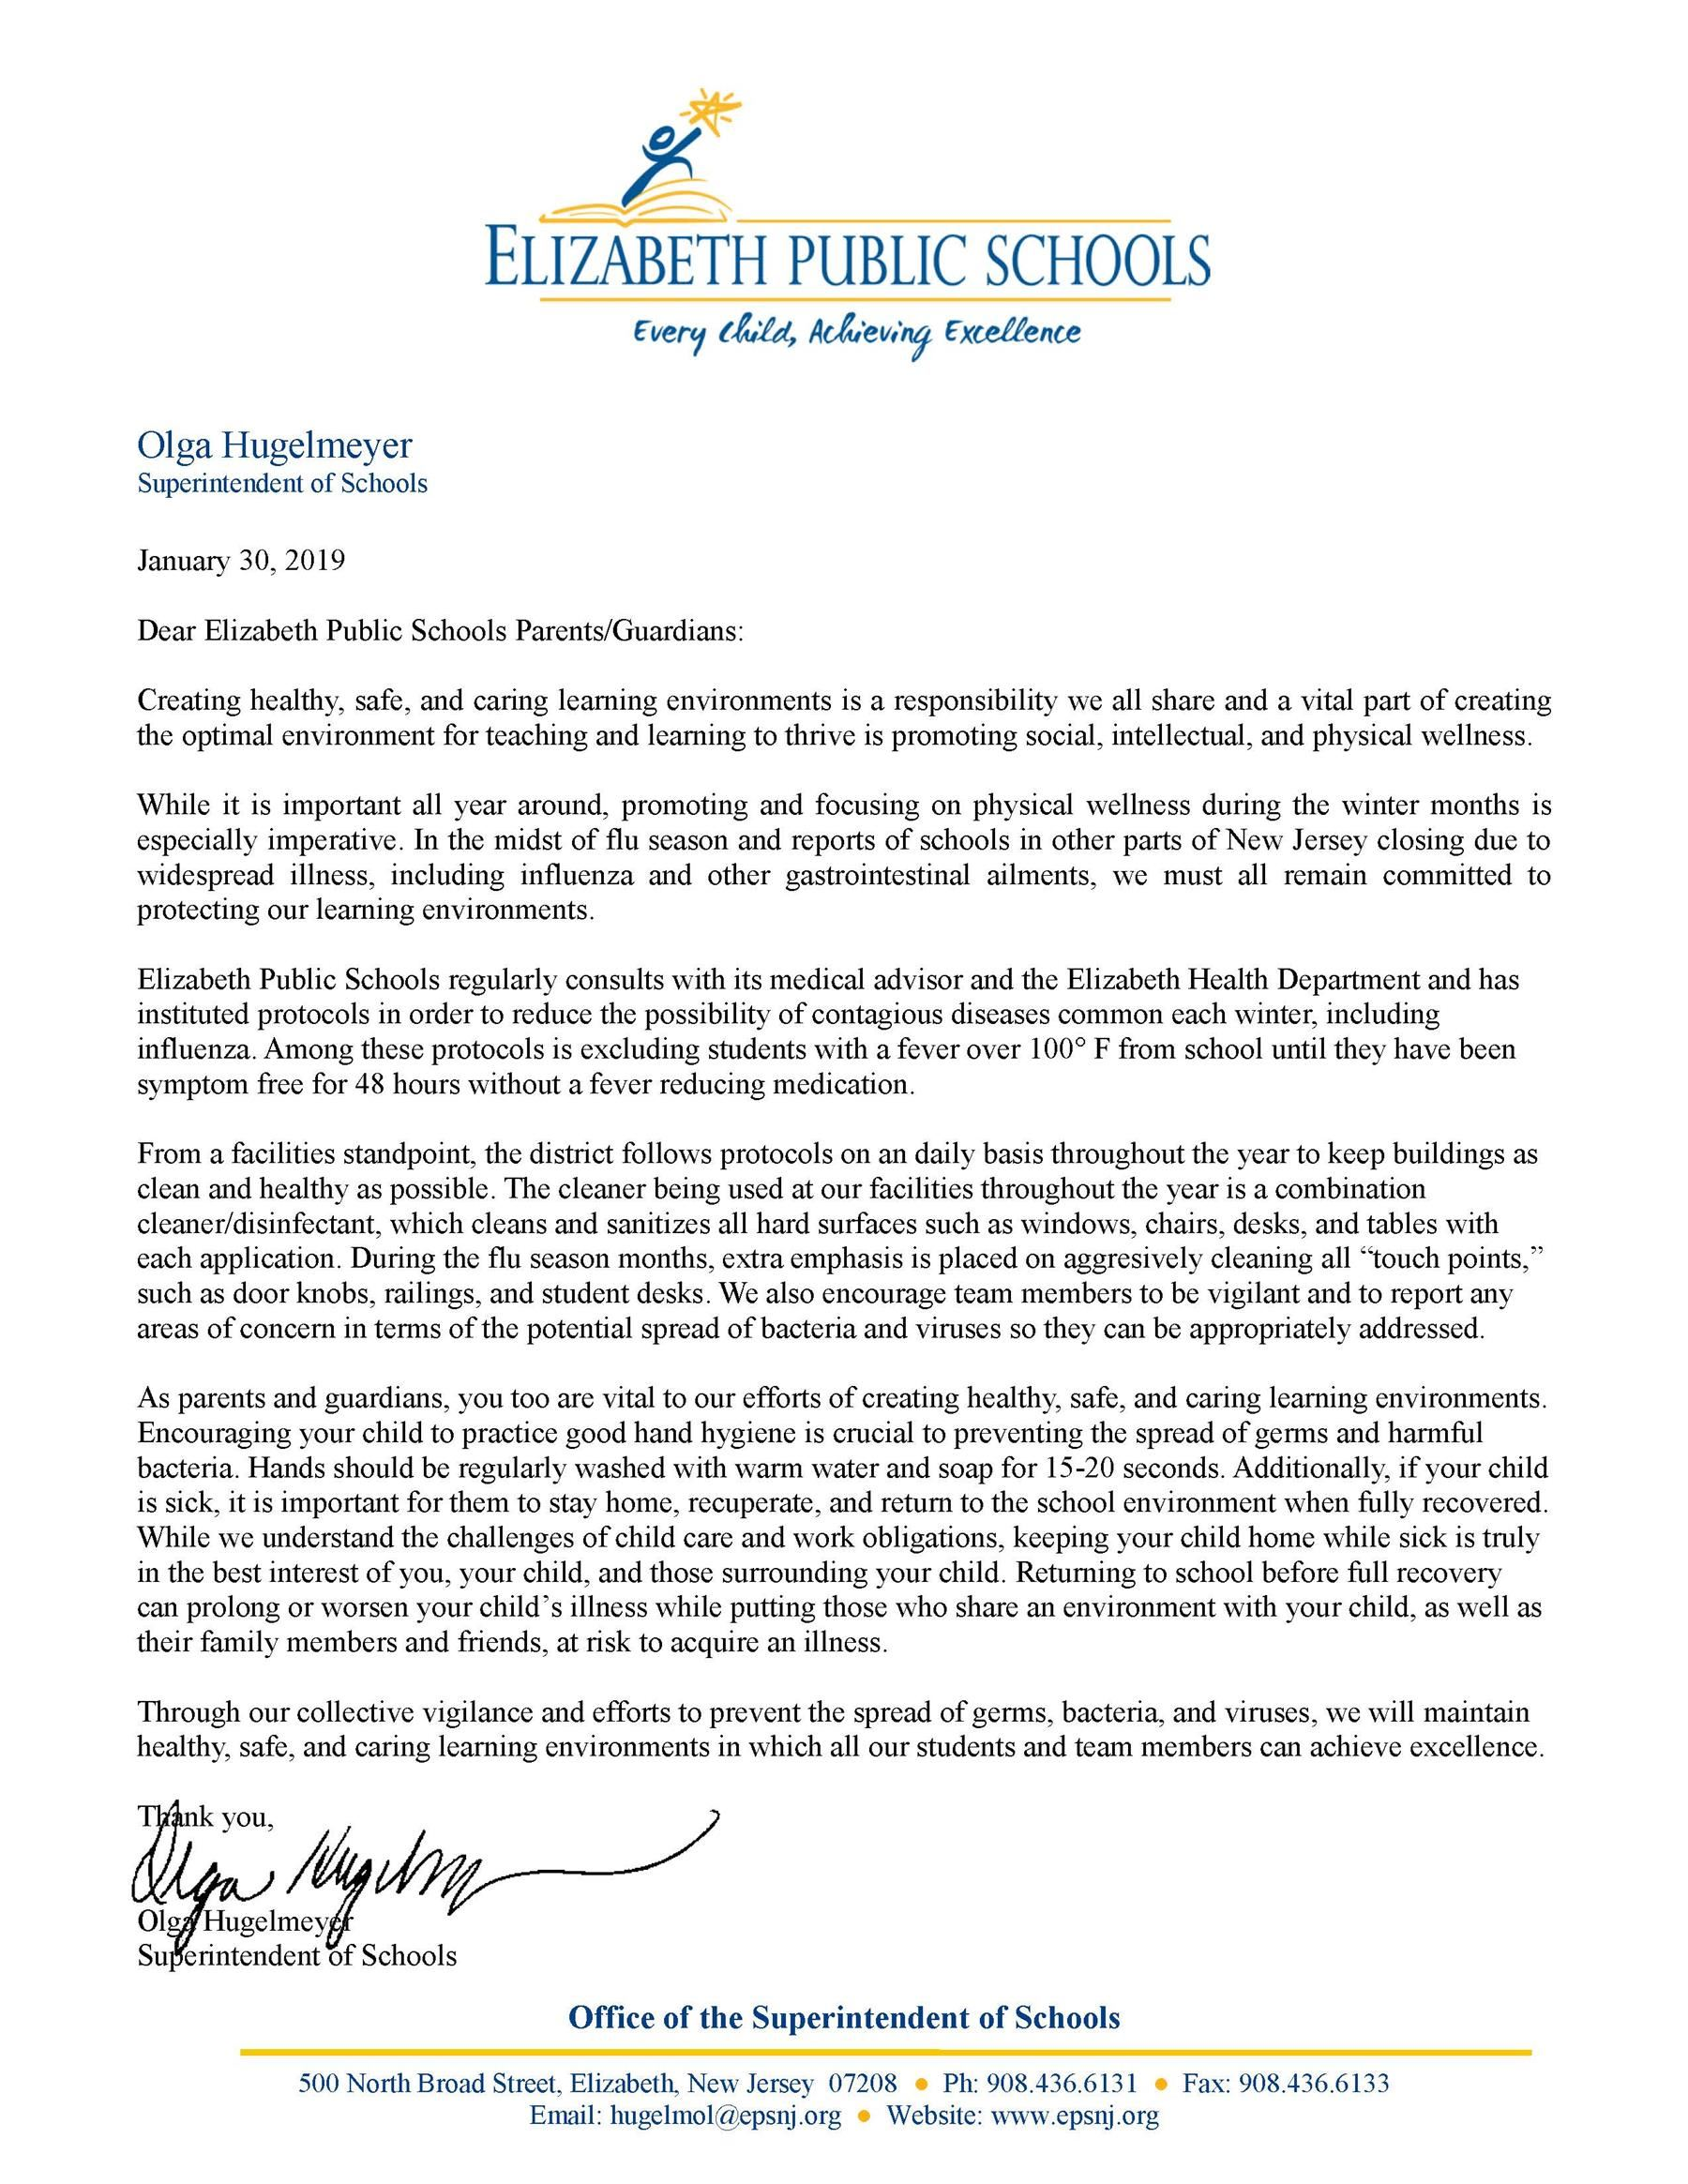 Letter to parents-guardians- Creating Healthy Safe and Caring Learning Environments